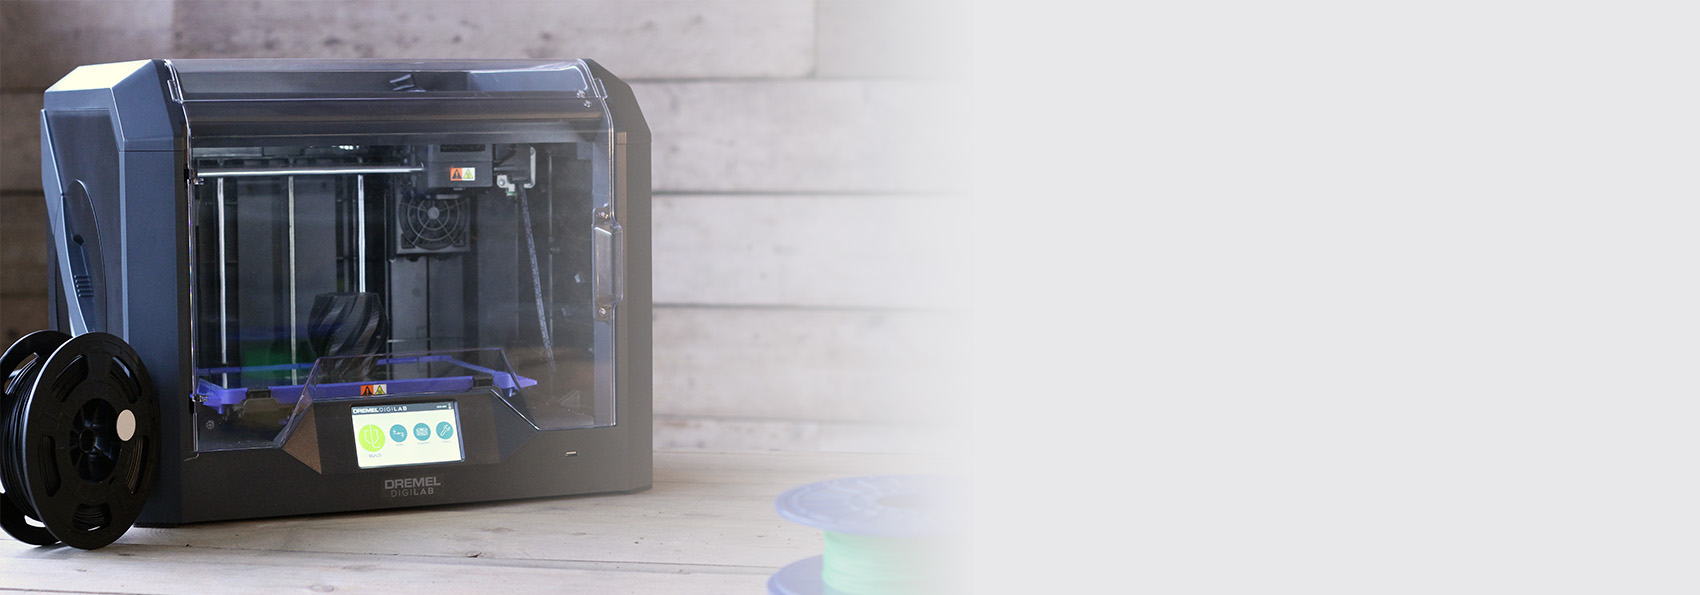 The Benefits of Fully Enclosed Filament 3D Printers